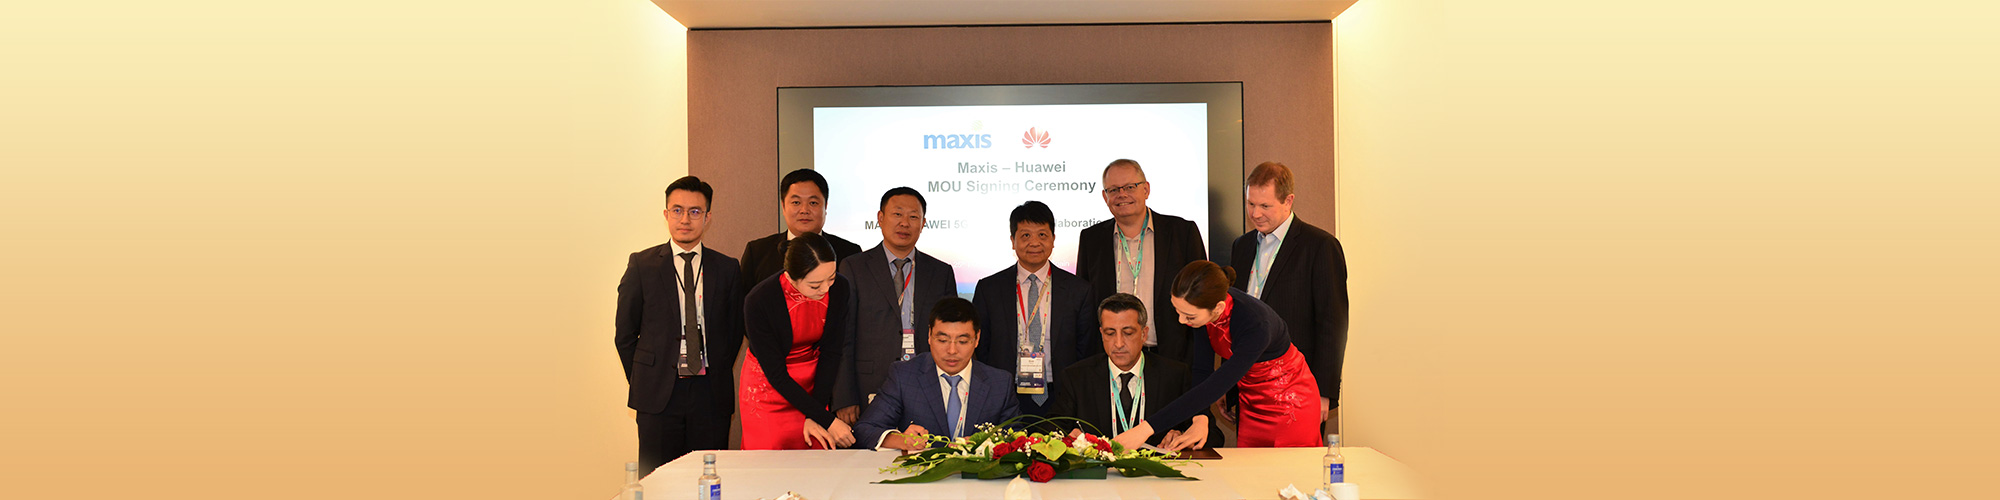 Maxis And Huawei Sign MoU On 5G Acceleration Program